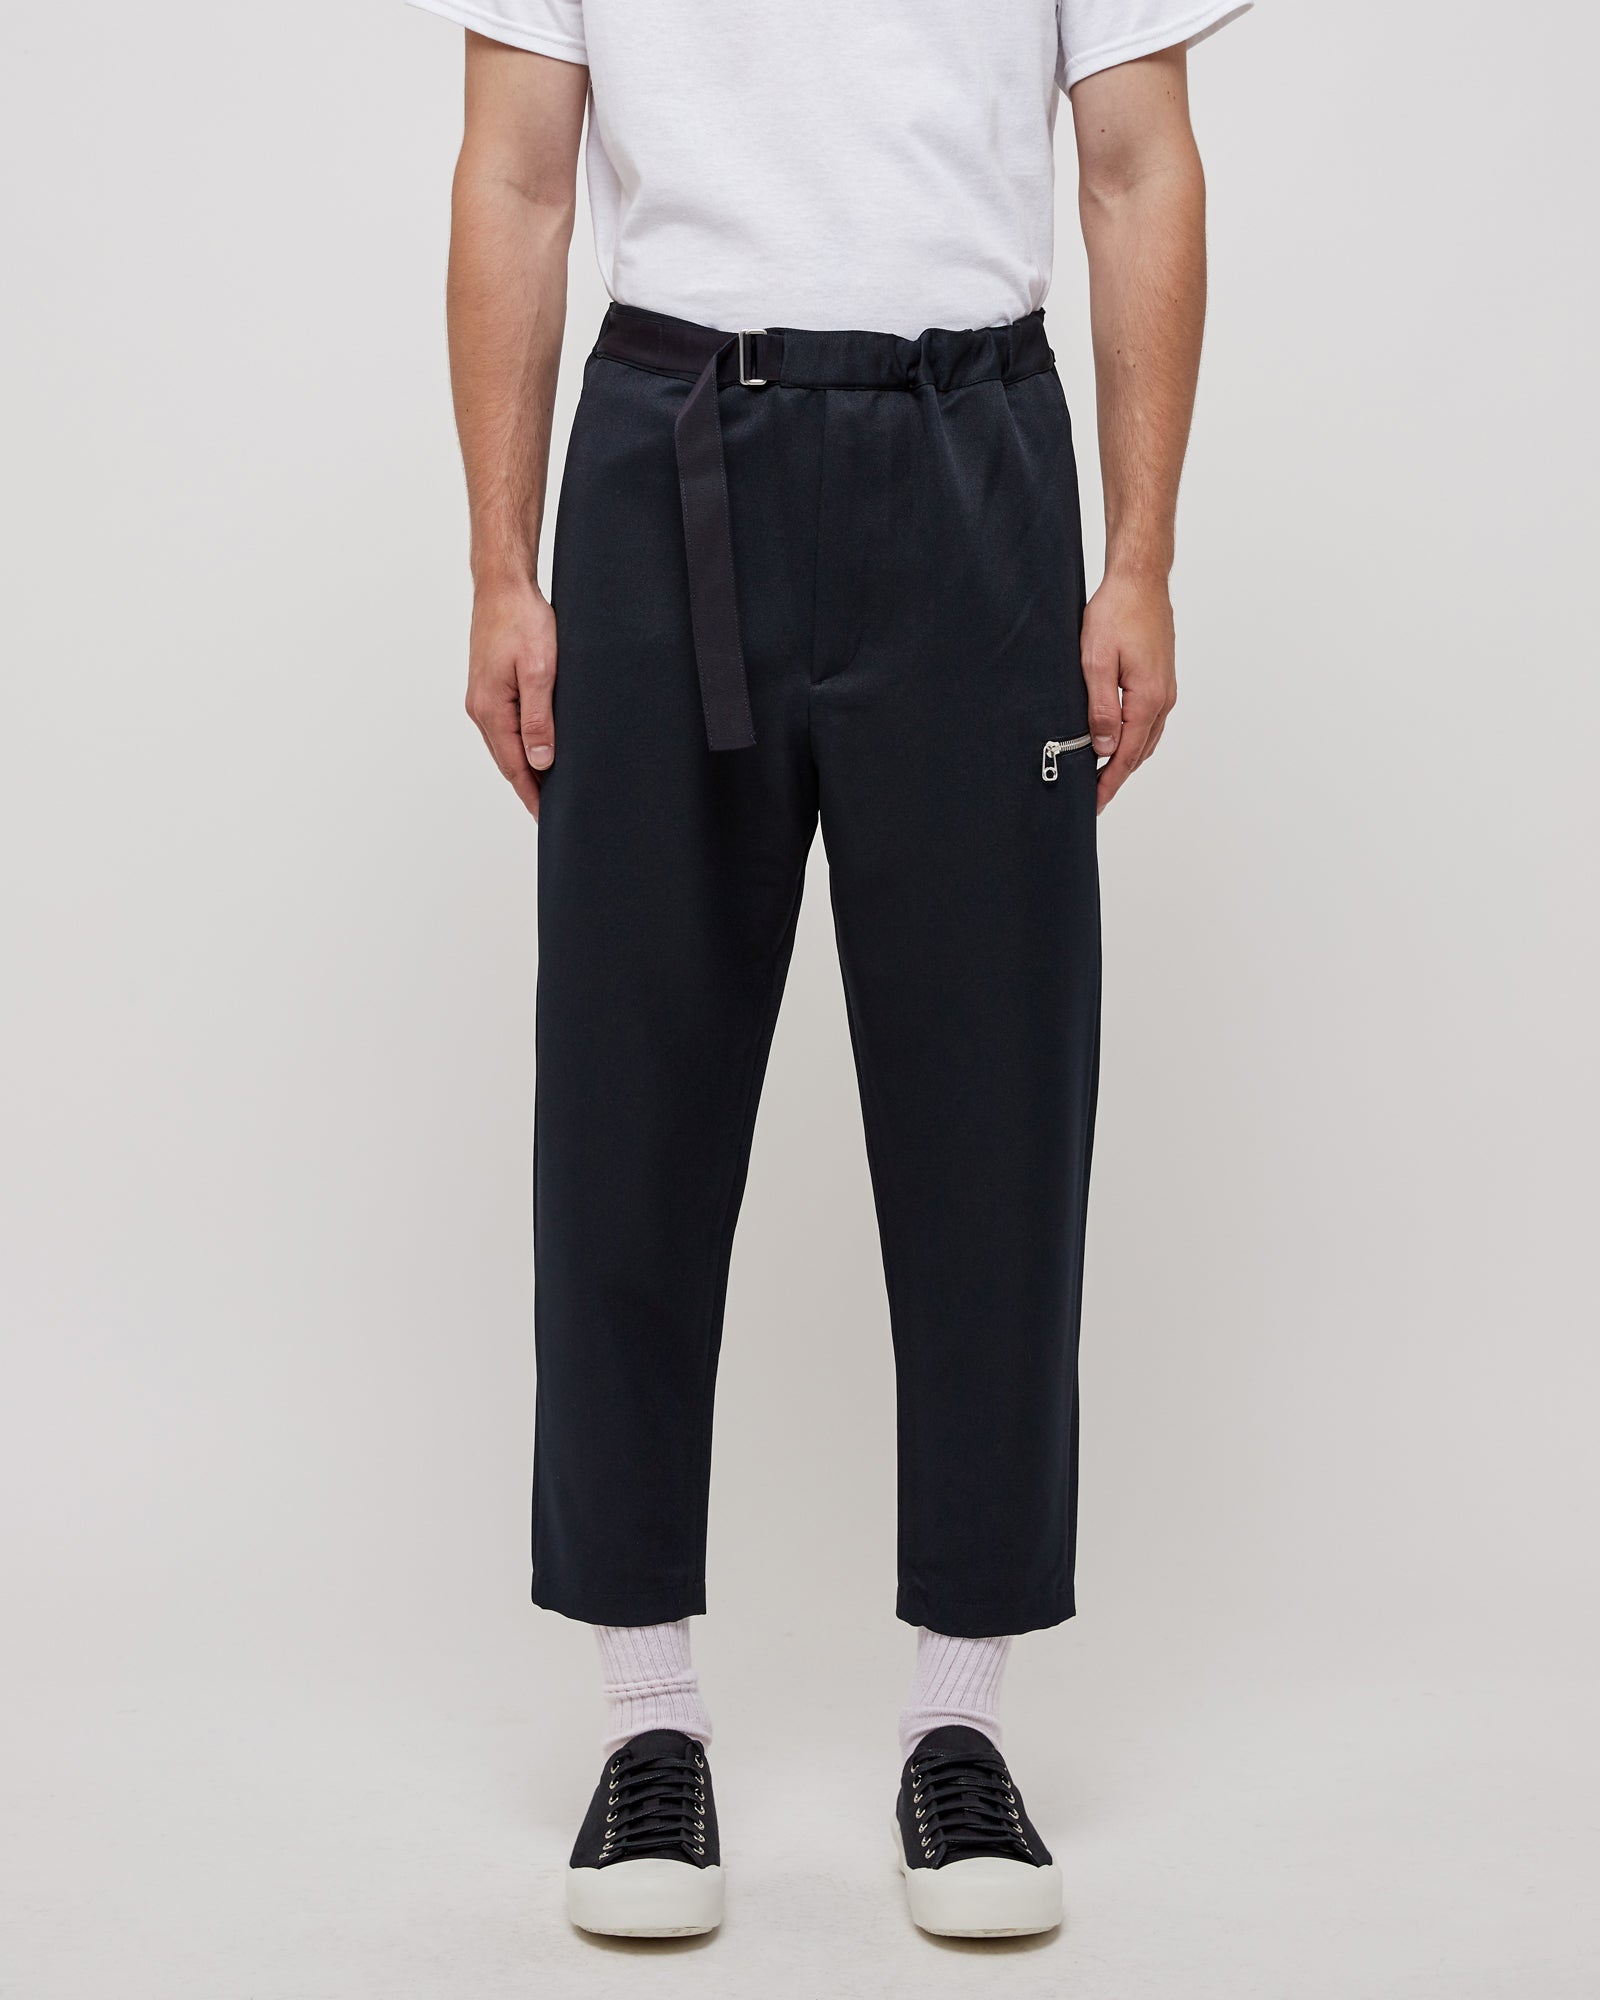 Regs Pant in Navy